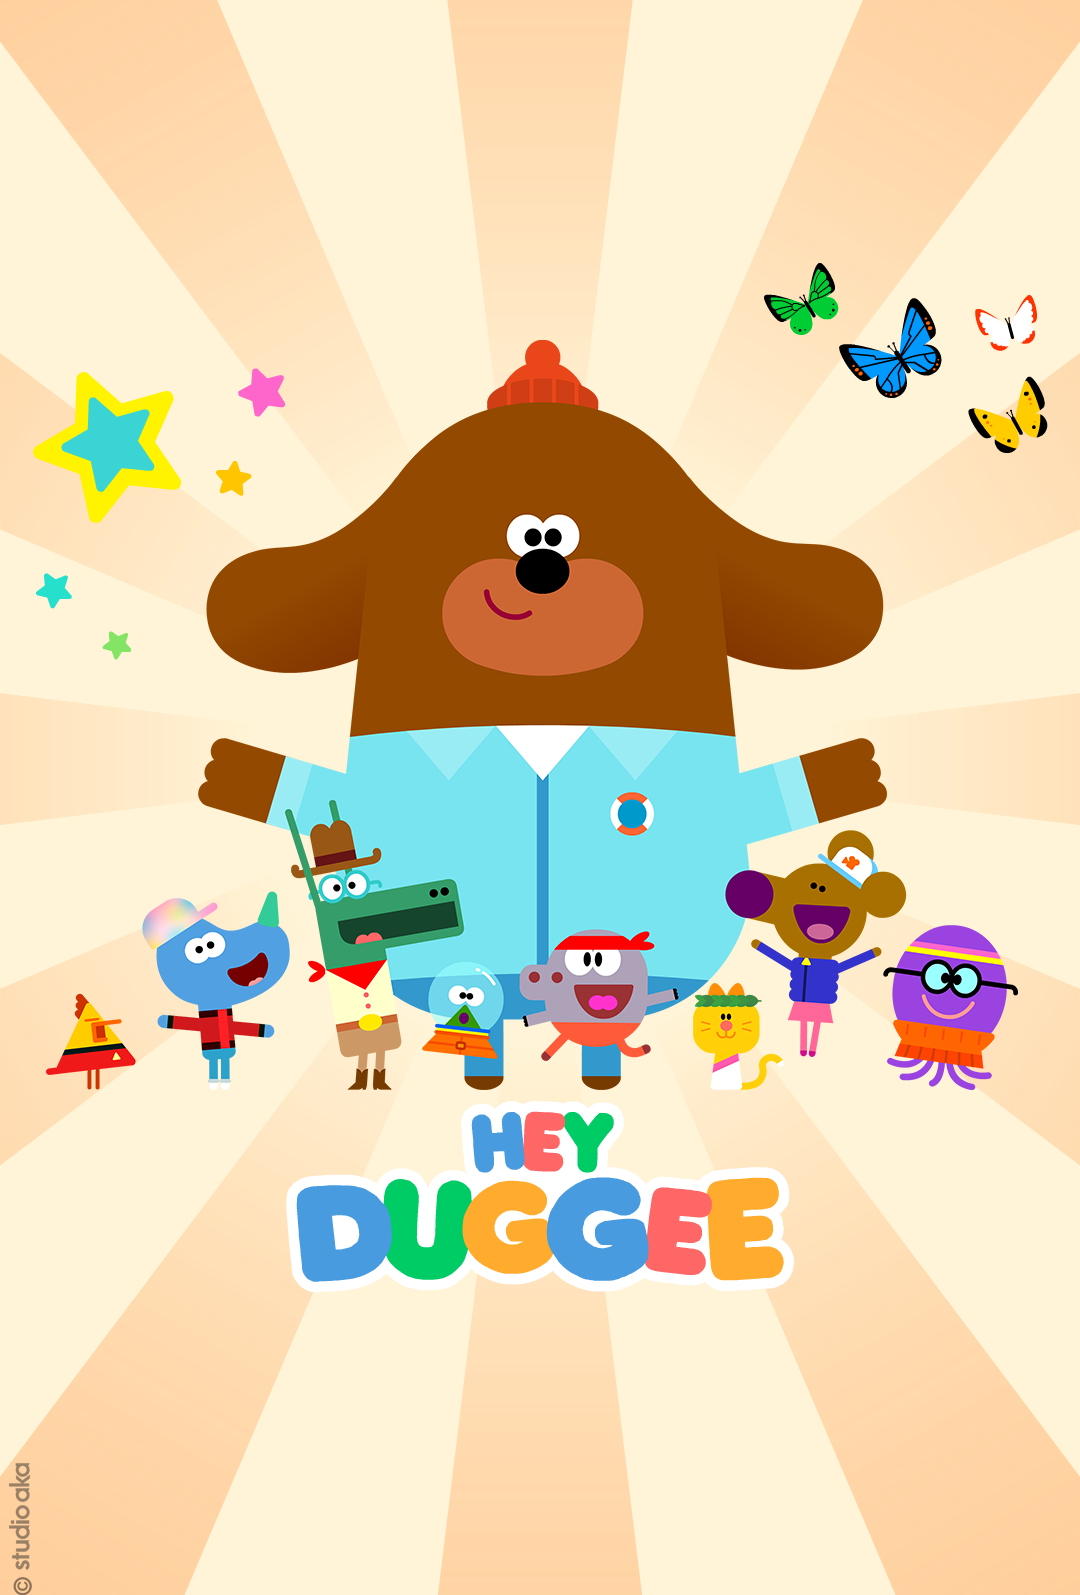 Hey Duggee at the Cinema Poster